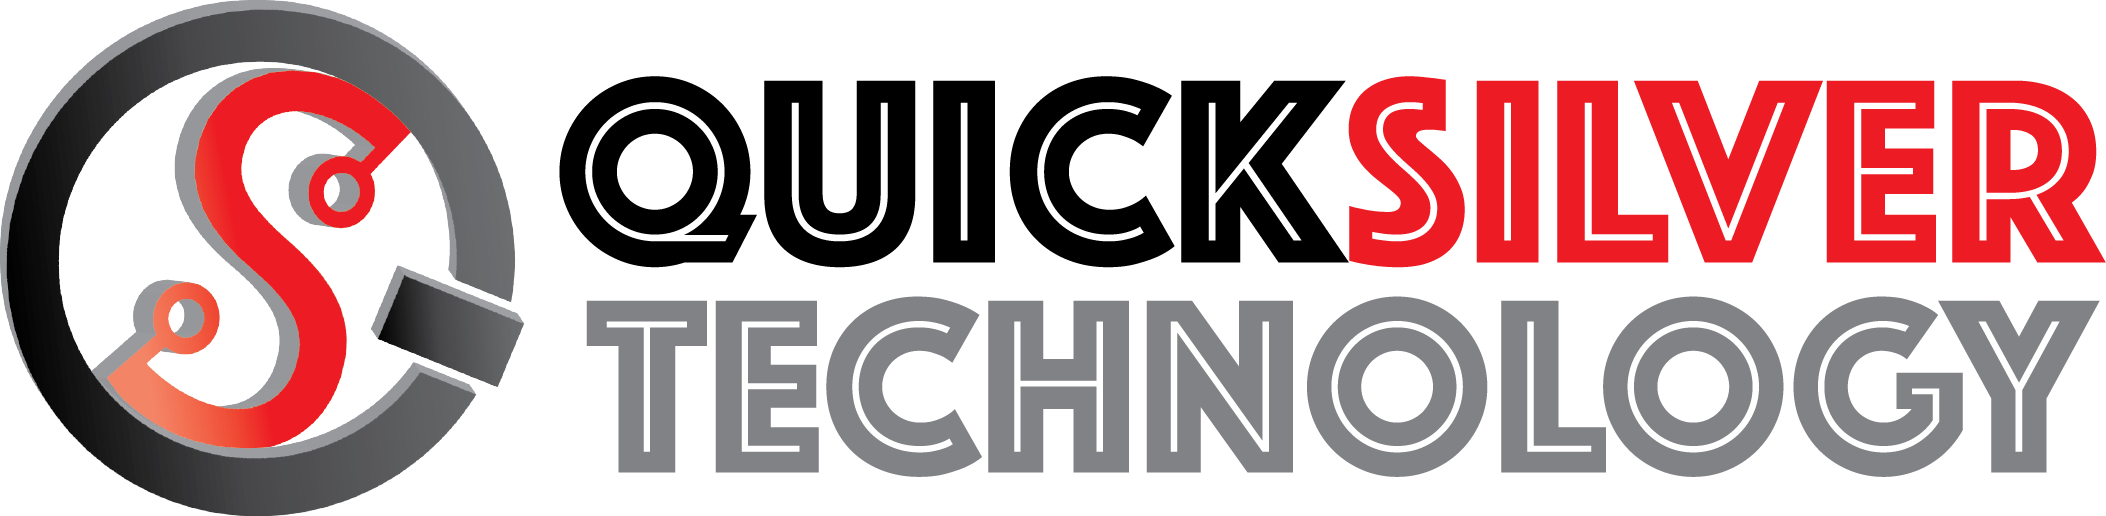 Quicksilver Technology